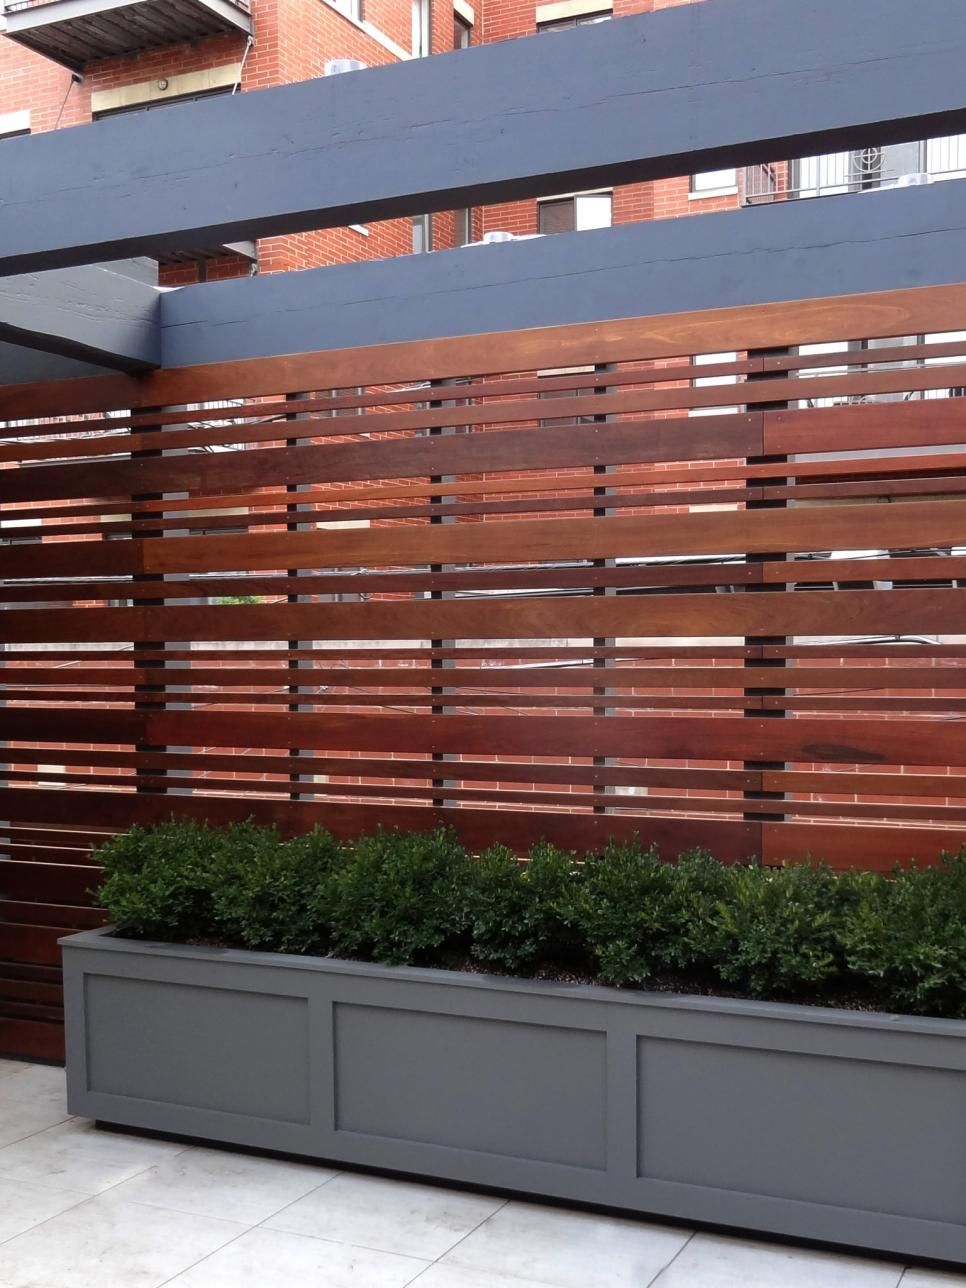 A Chicago Rooftop Fence By Topiarius In A Horizontal 400 x 300